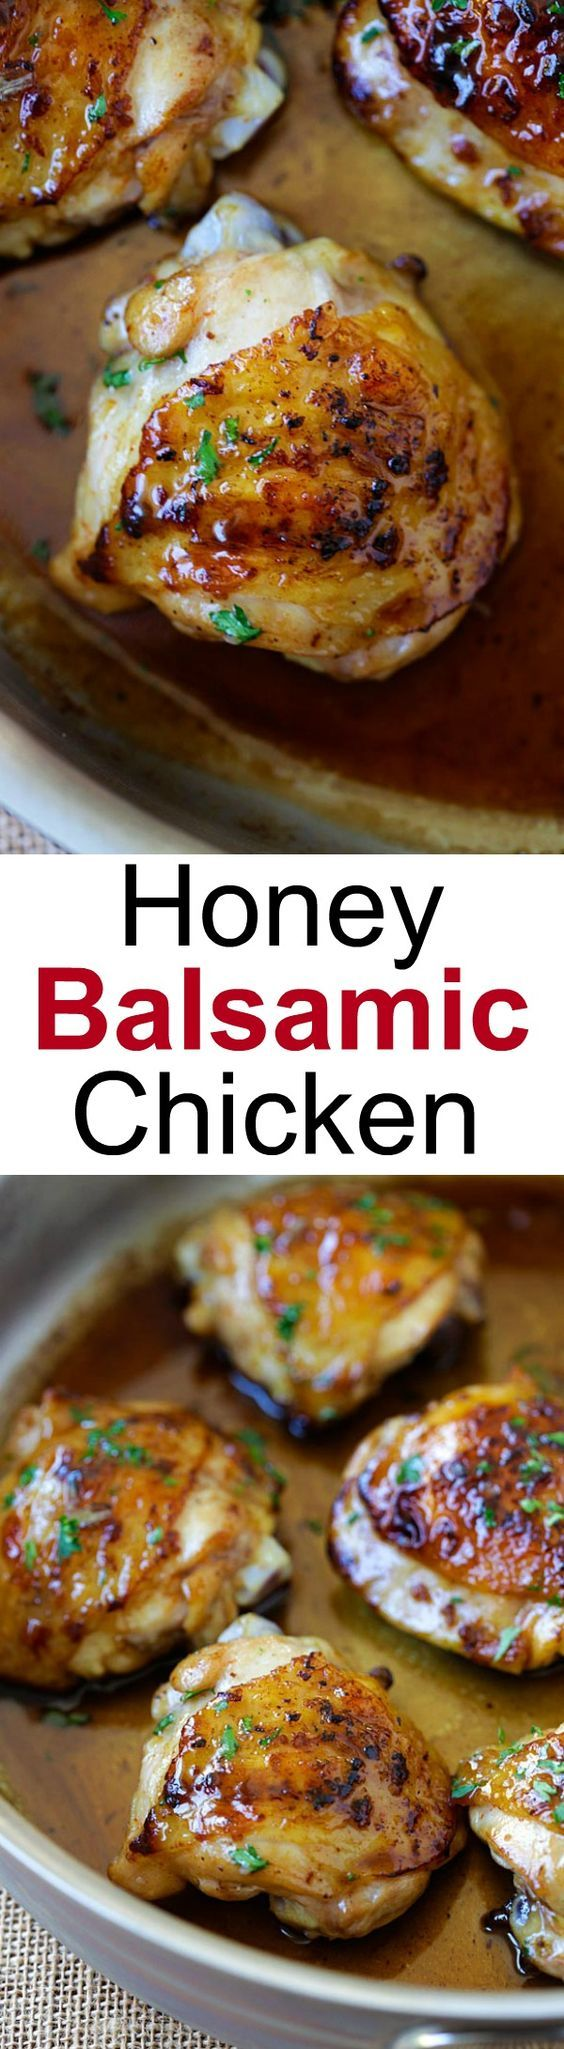 Honey Balsamic Chicken – the easiest skillet chicken with sweet and savory honey balsamic sauce. Homemade chicken dinner is so good with this recipe   rasamalaysia.com